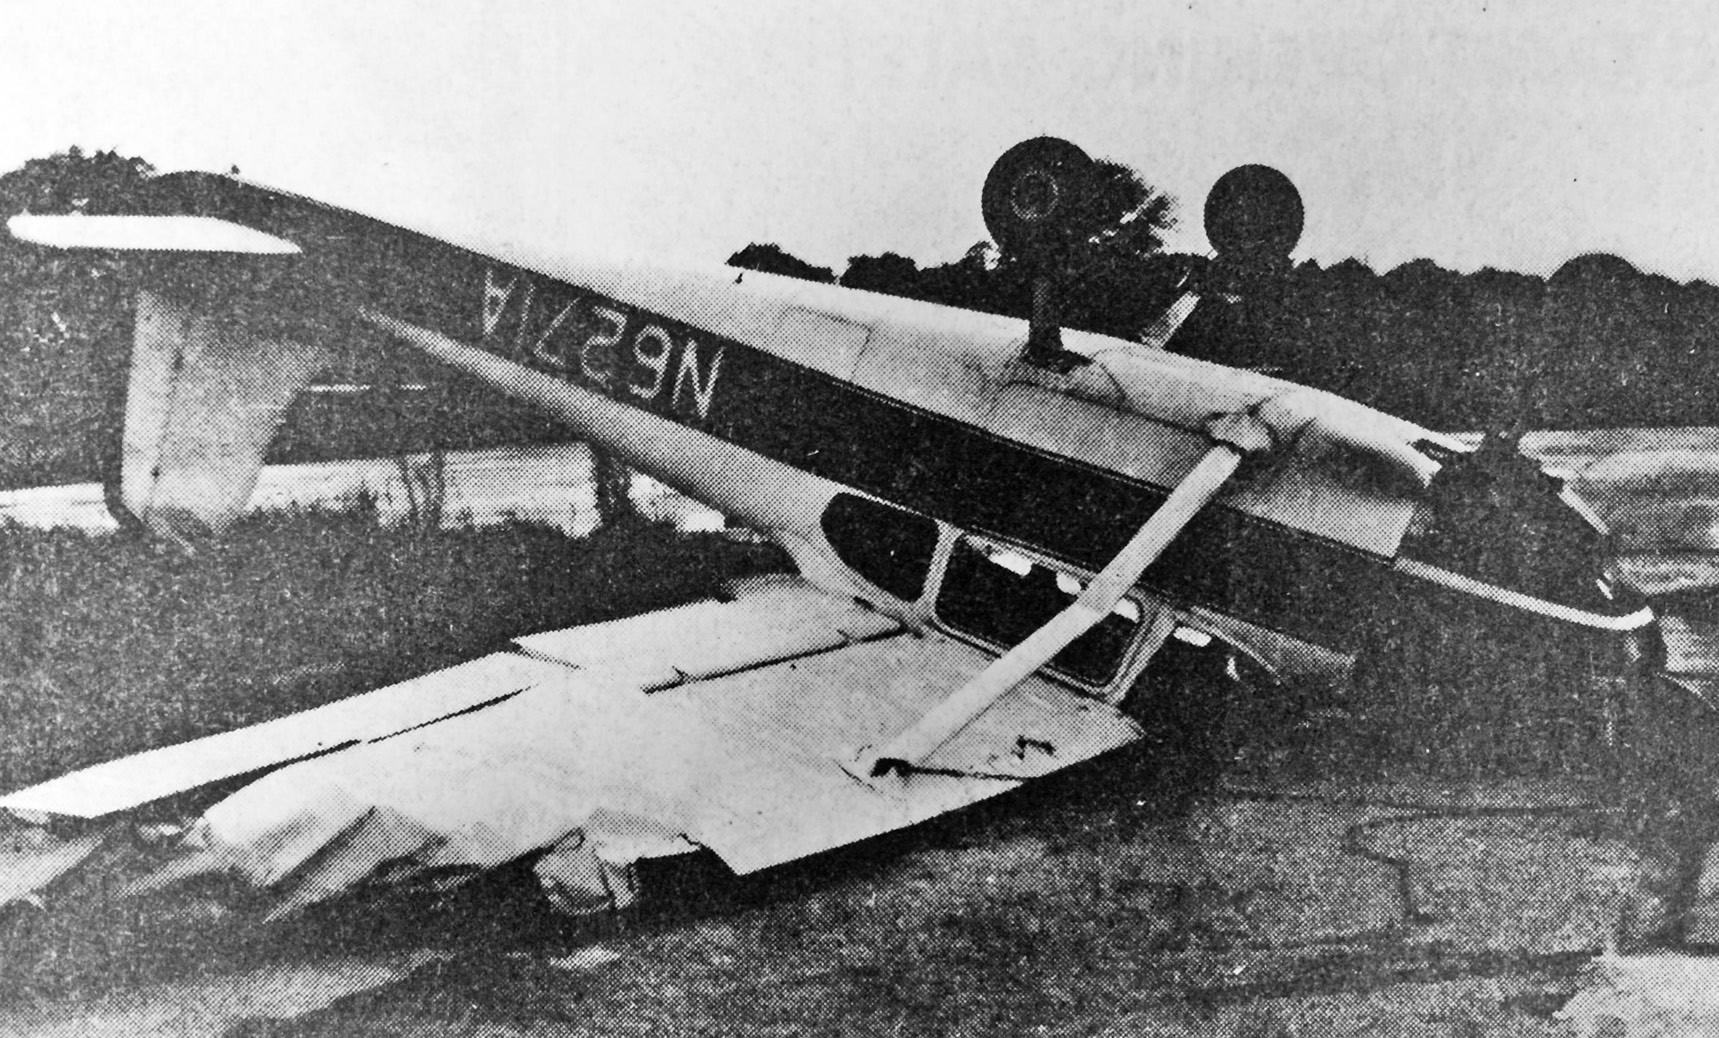 FLIP FLOP-Pictured is one of the damaged airplanes from the local airport, after Sunday afternoons high winds and gusting rains. Damage is estimated at $1,000. Express photo originally ran in May, 1975.